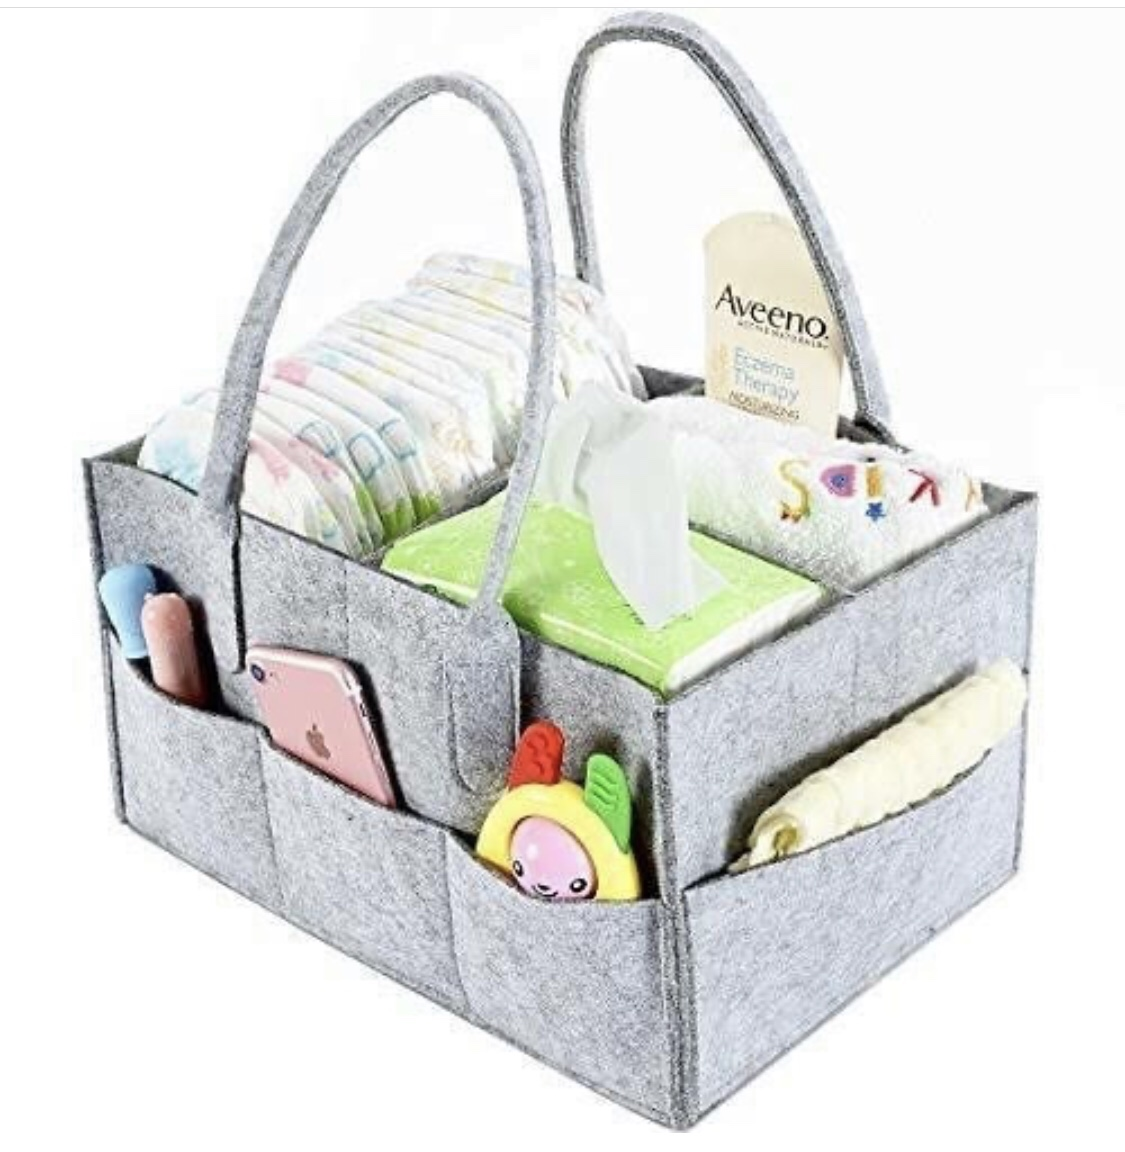 diaper caddy -nappy caddy-kmart